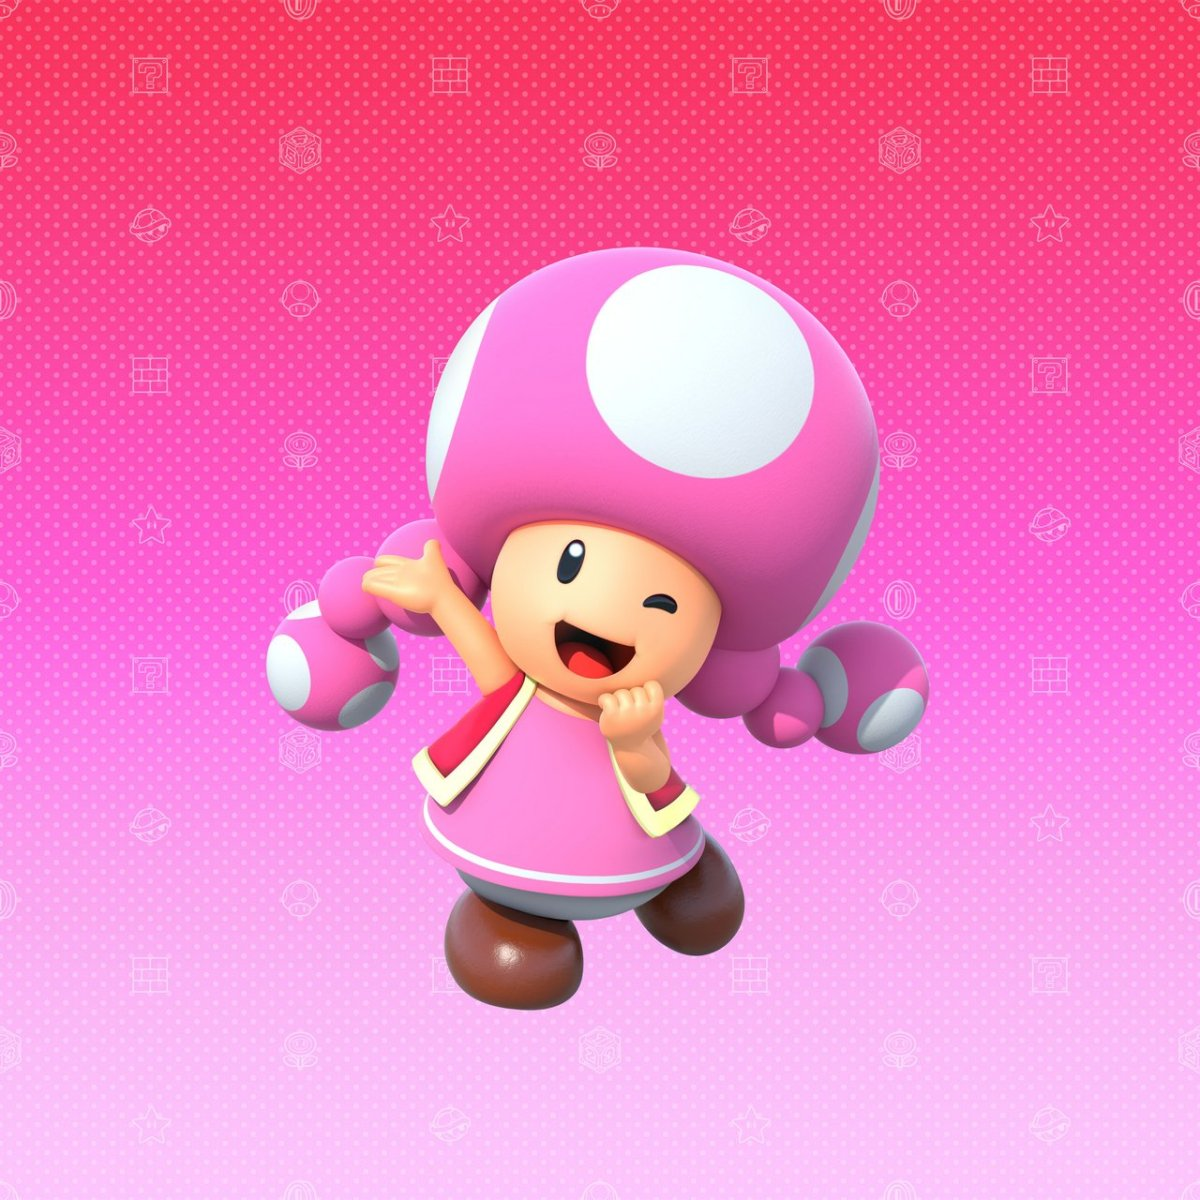 Nintendo Account Launches In Japan Today And Official Blog ...